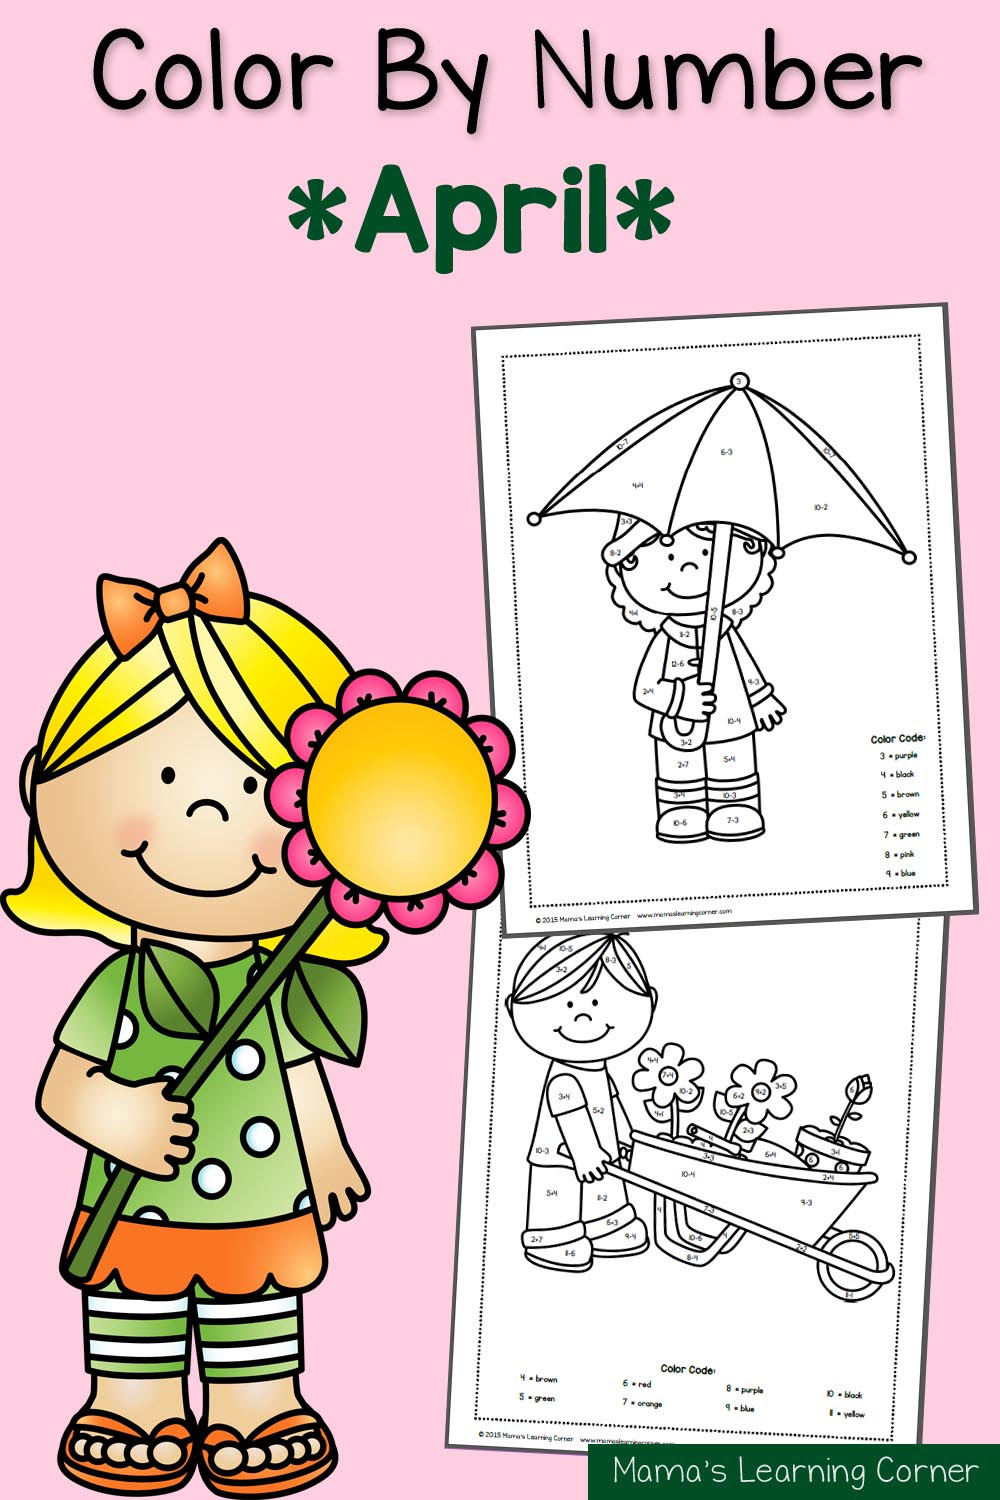 Color By Number Worksheets: Spring! - Mamas Learning Corner